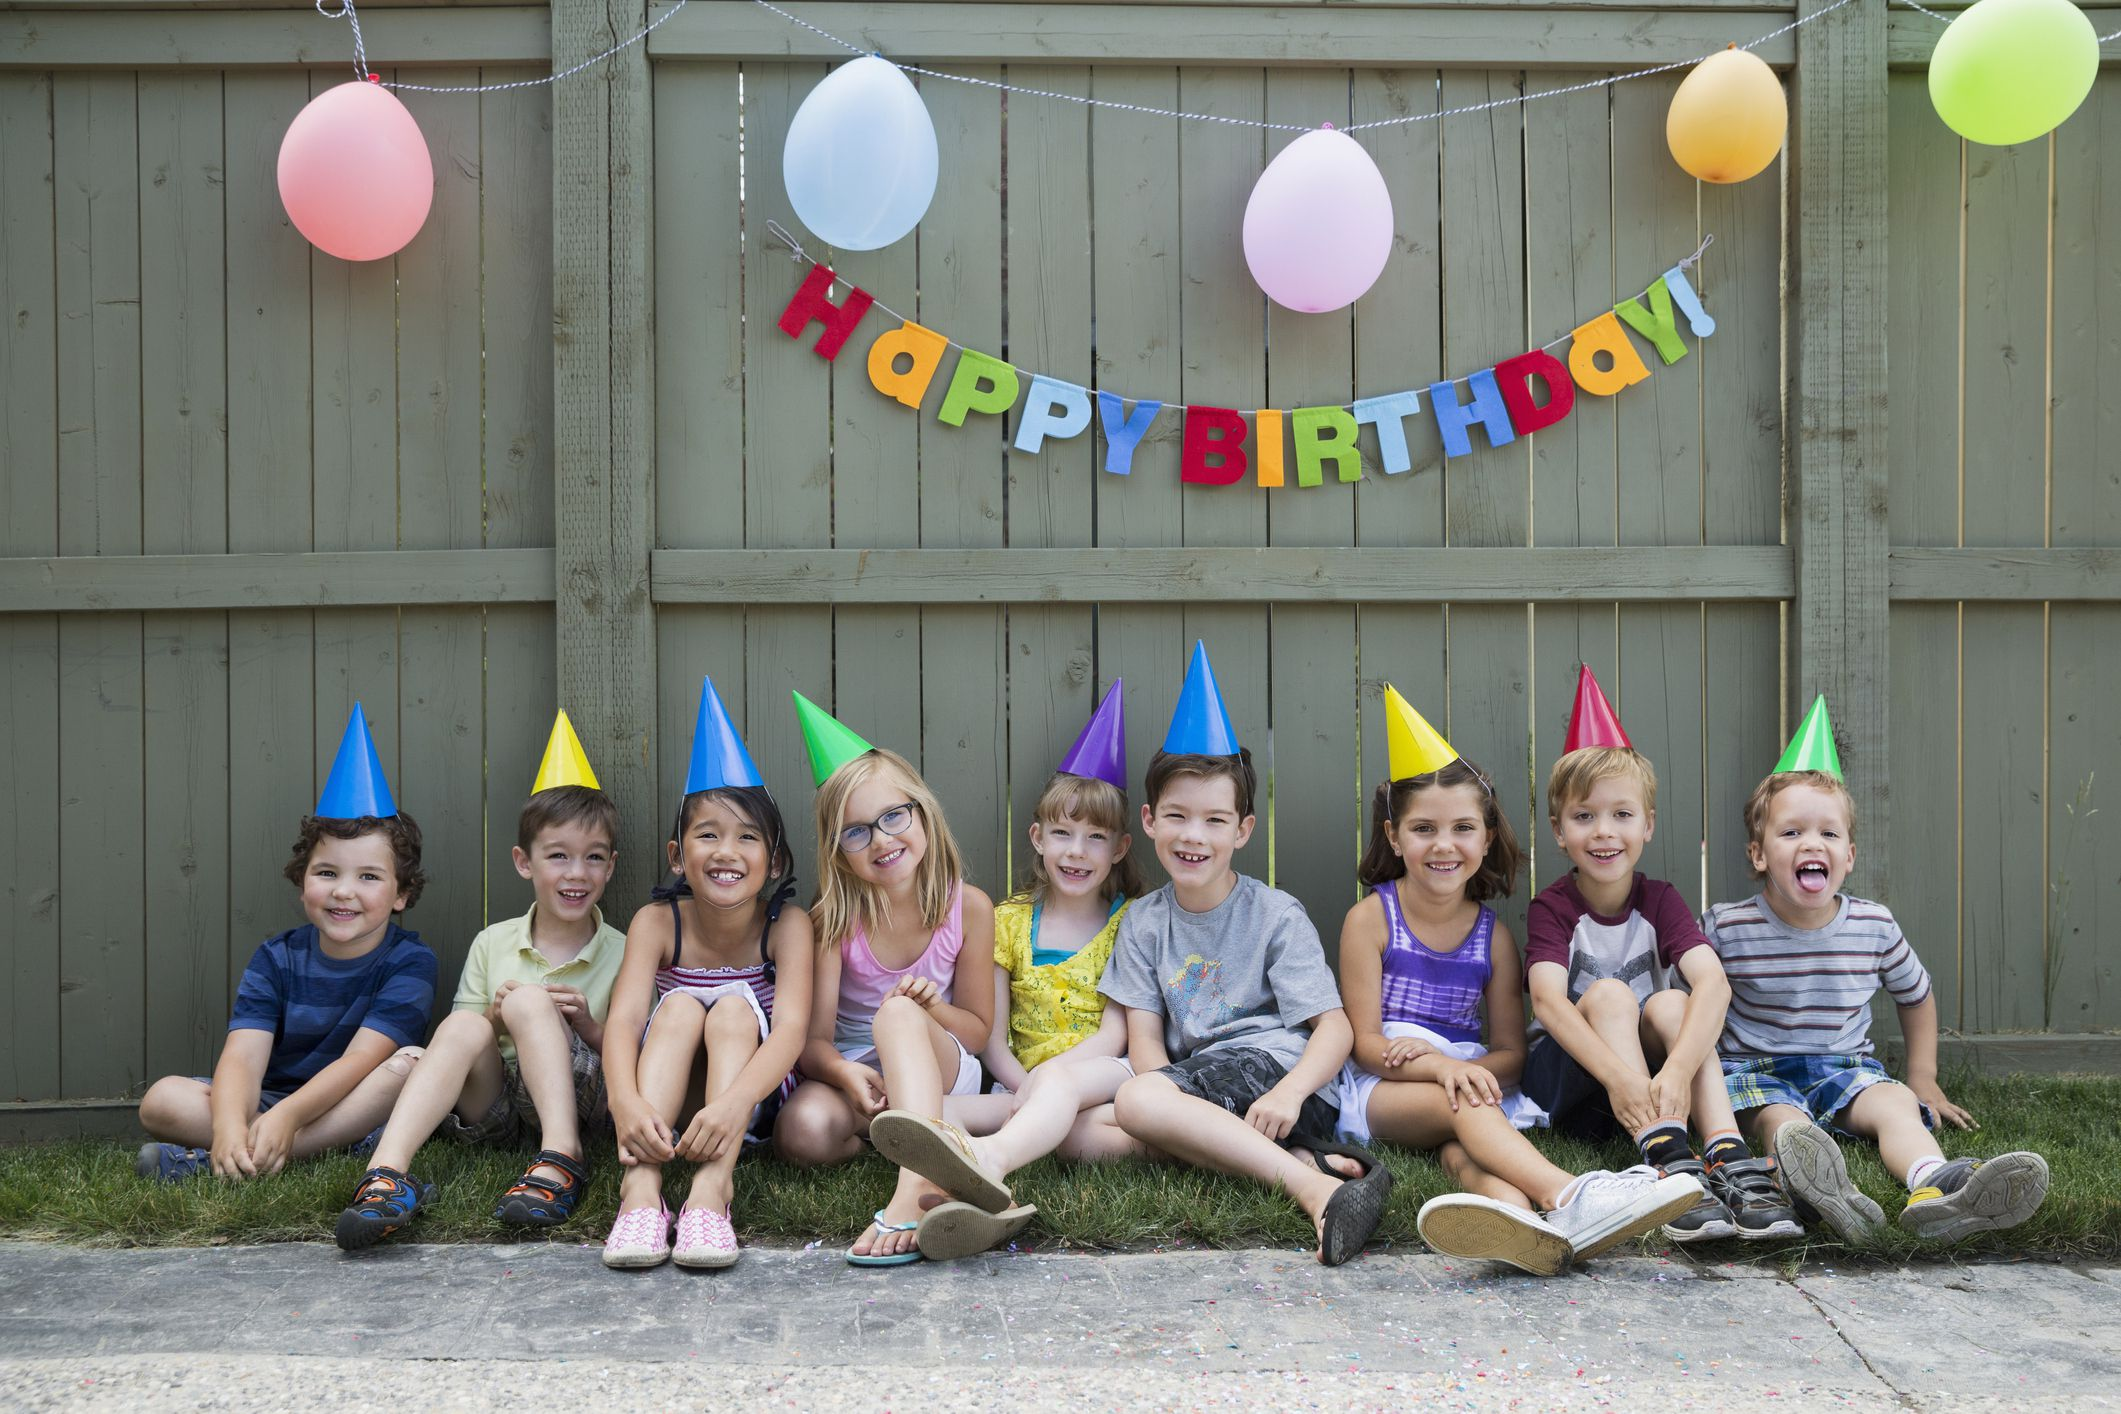 Top Places To Have A Birthday Party In Memphis - Childrens birthday parties pizza hut